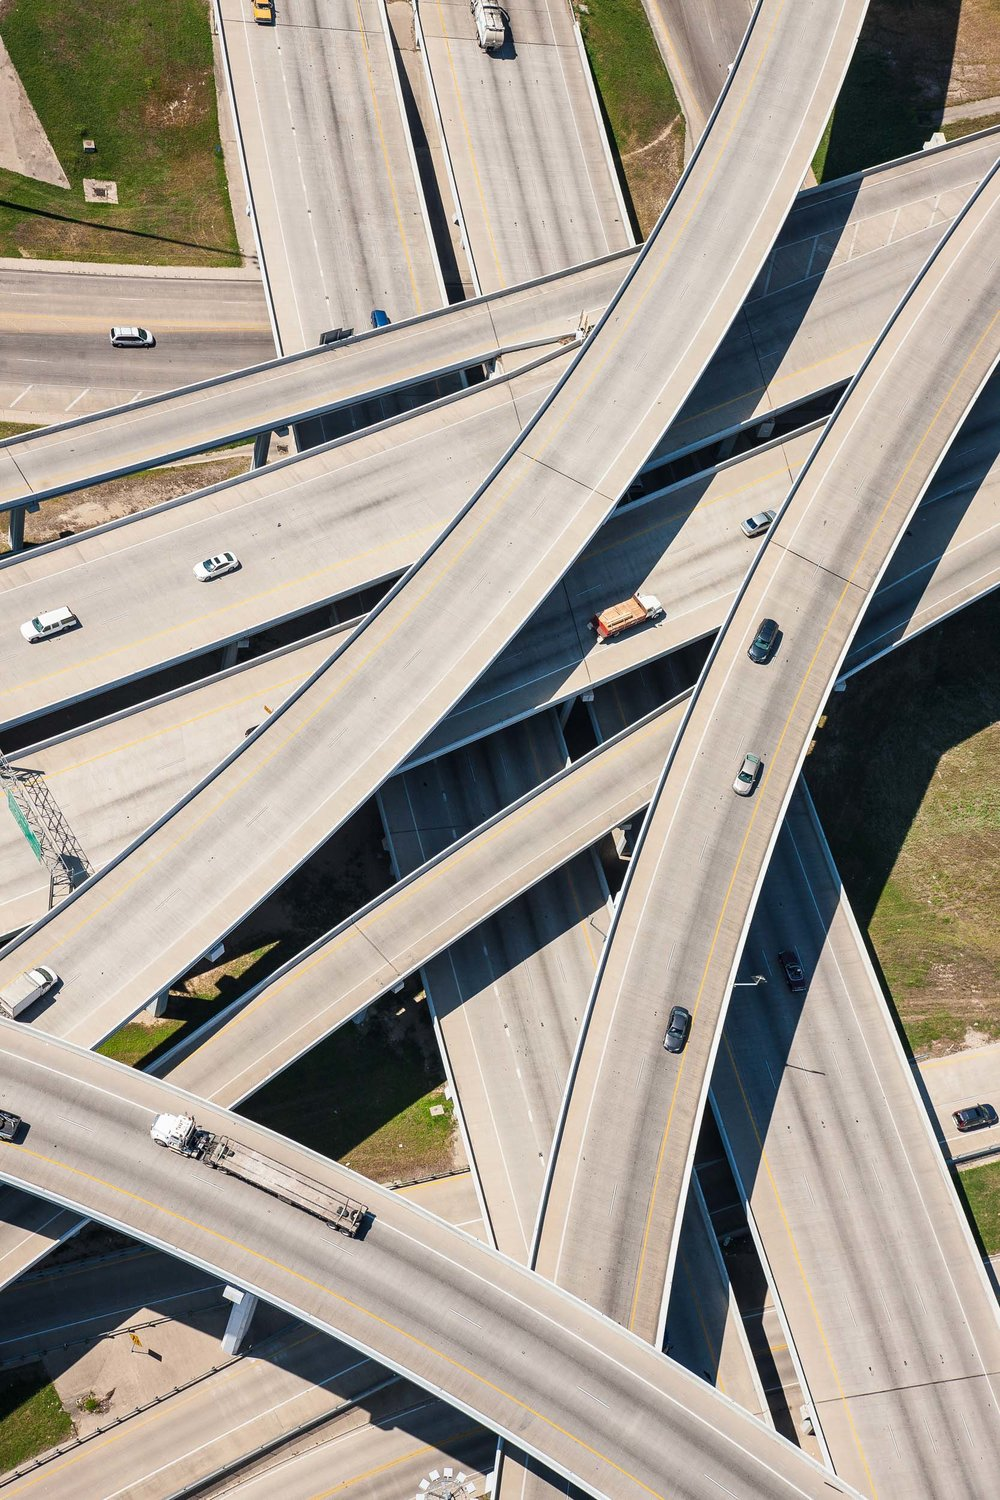 Aerial interchange in Fort Worth, TX